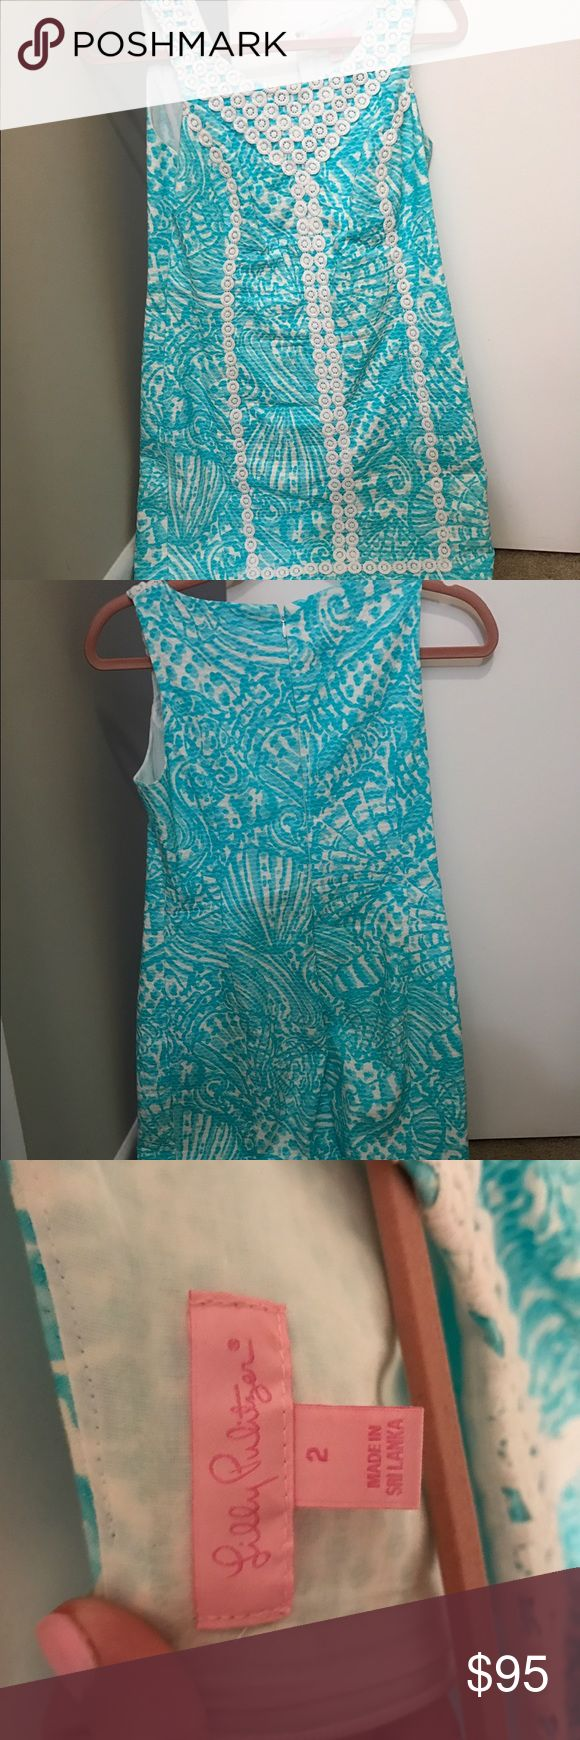 Lilly Pulitzer Dress Lilly Pulitzer Aqua dress. Worn once for a job interview. Perfect condition and will be the perfect spring staple outfit 👗 Lilly Pulitzer Dresses Midi